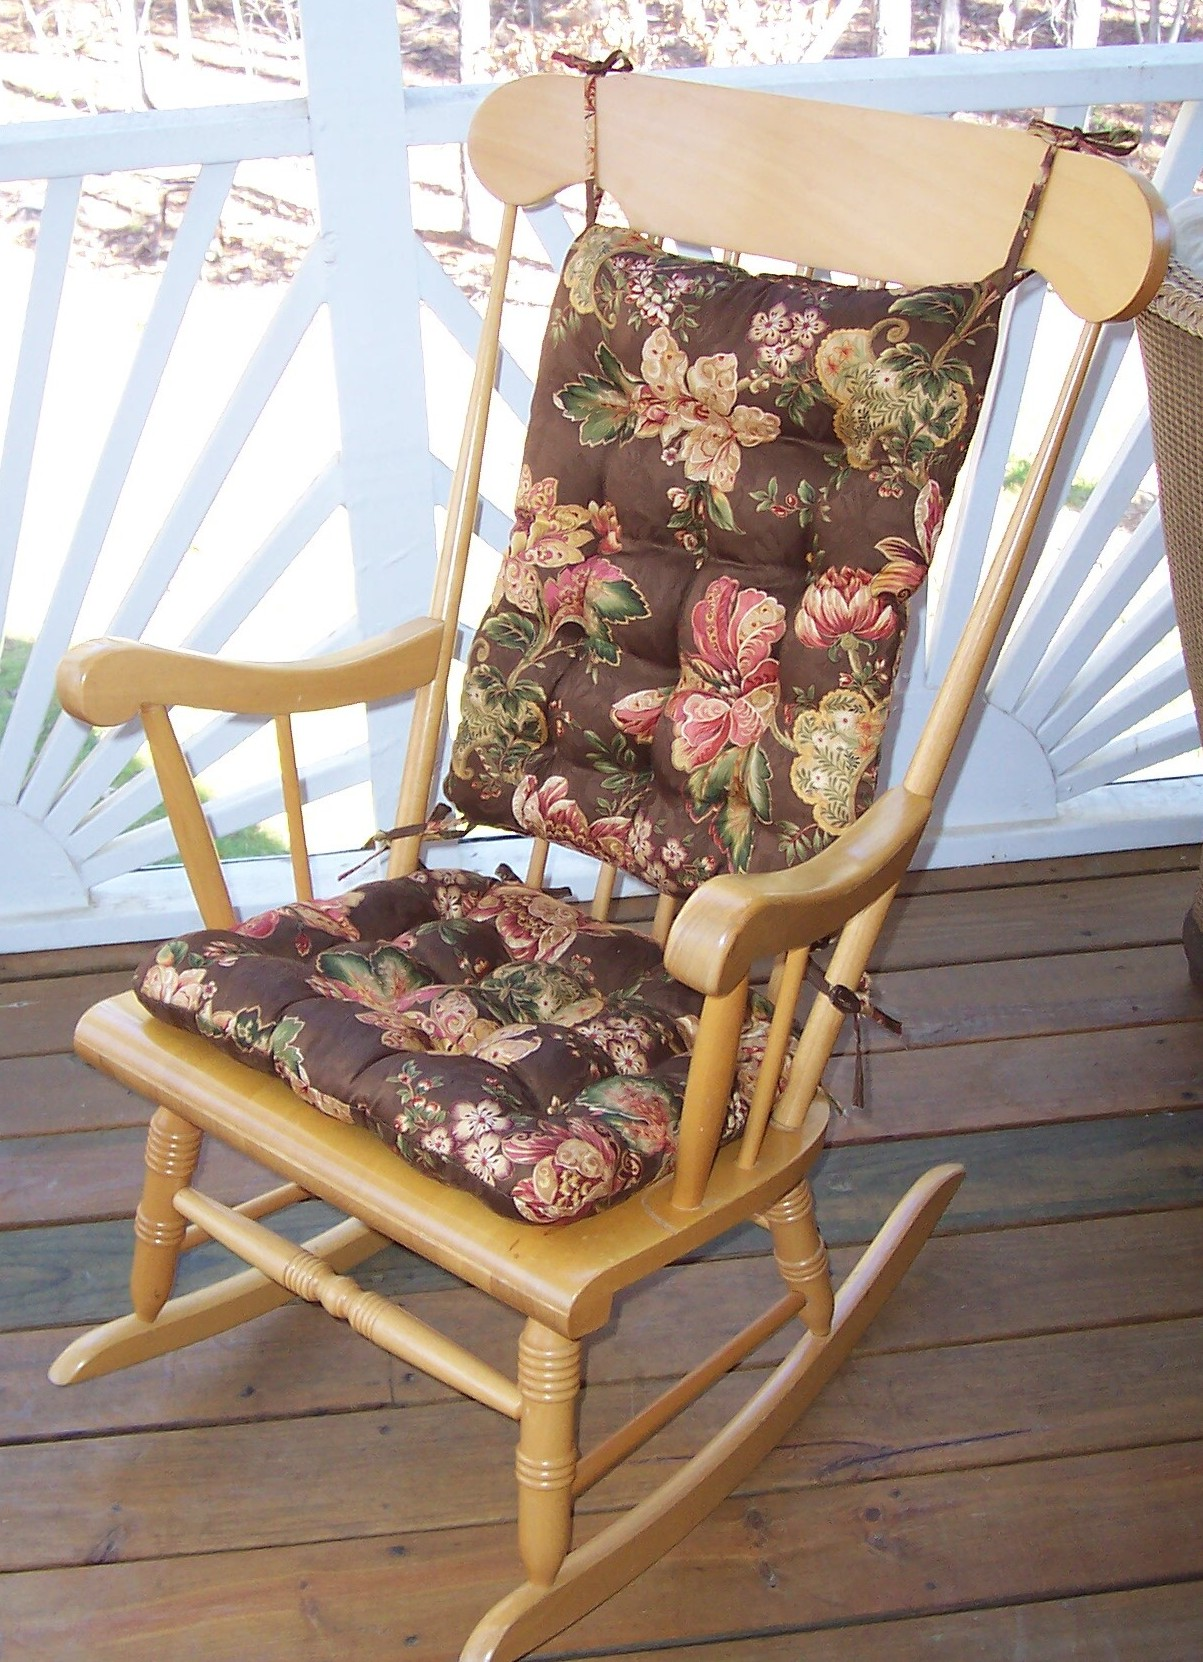 Rocking Chair Cushions for Nursery | Rocking Chair Cushion Sets | Rocking Chair Cushion